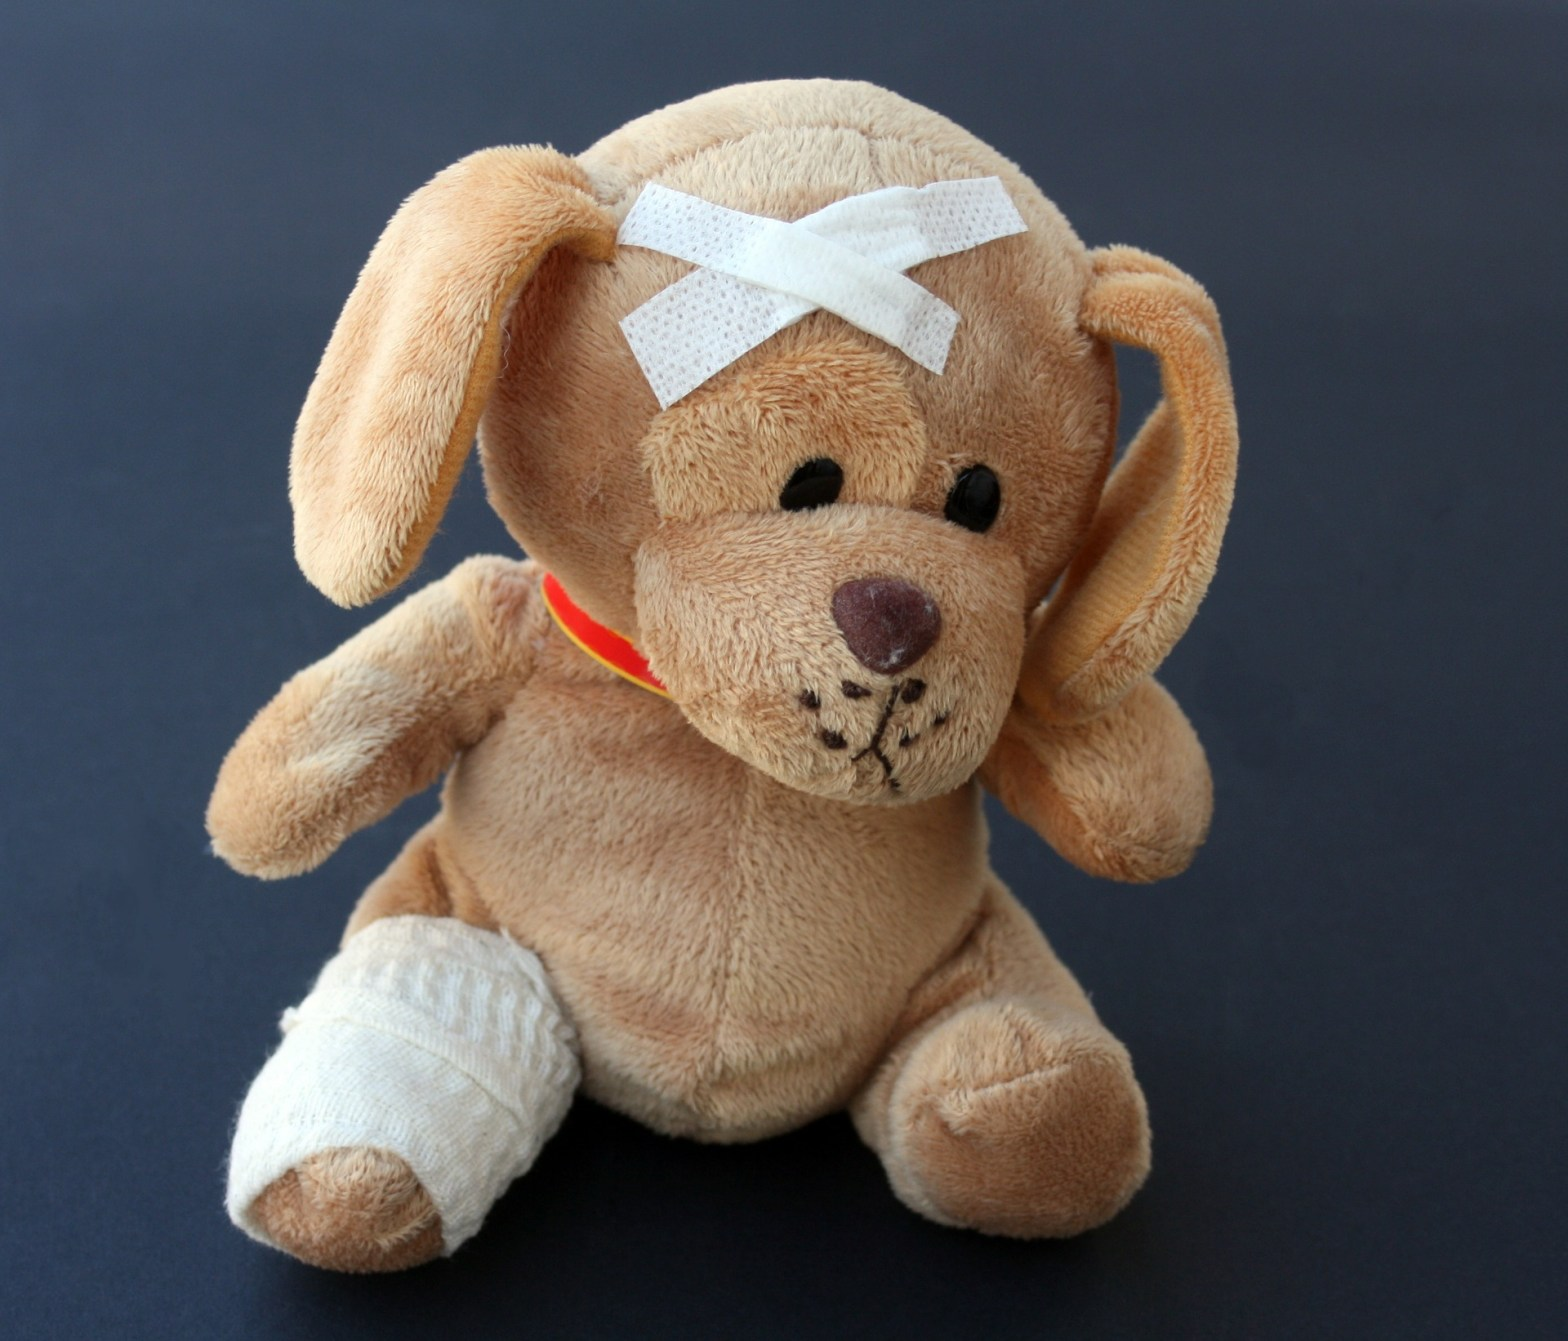 Teddy bear with bandages that needs to heal